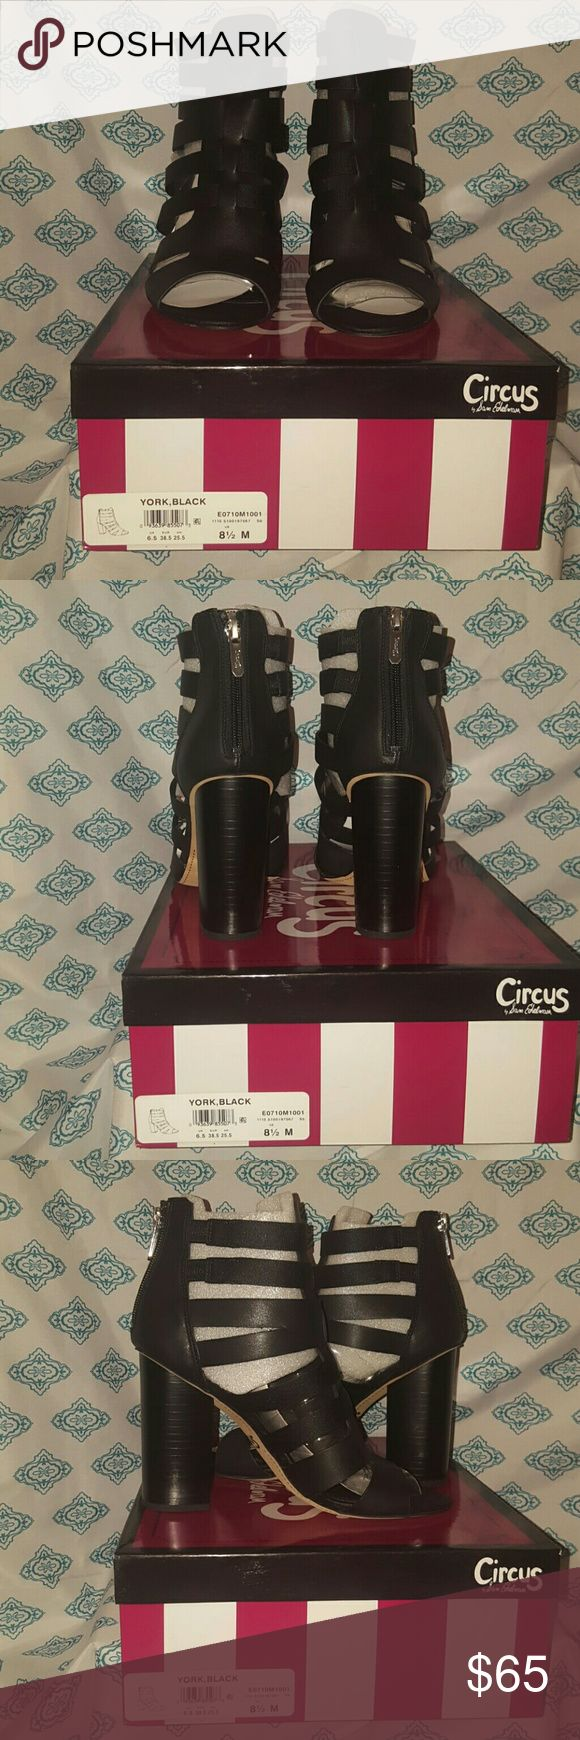 BNIB Sam Edelman circus York caged sandal BNIB Sam Edelman circus York caged sandal Never worn Will ship with box and tissue  If you have any questions or would like to see additional photos don't hesitate to ask! Circus by Sam Edelman Shoes